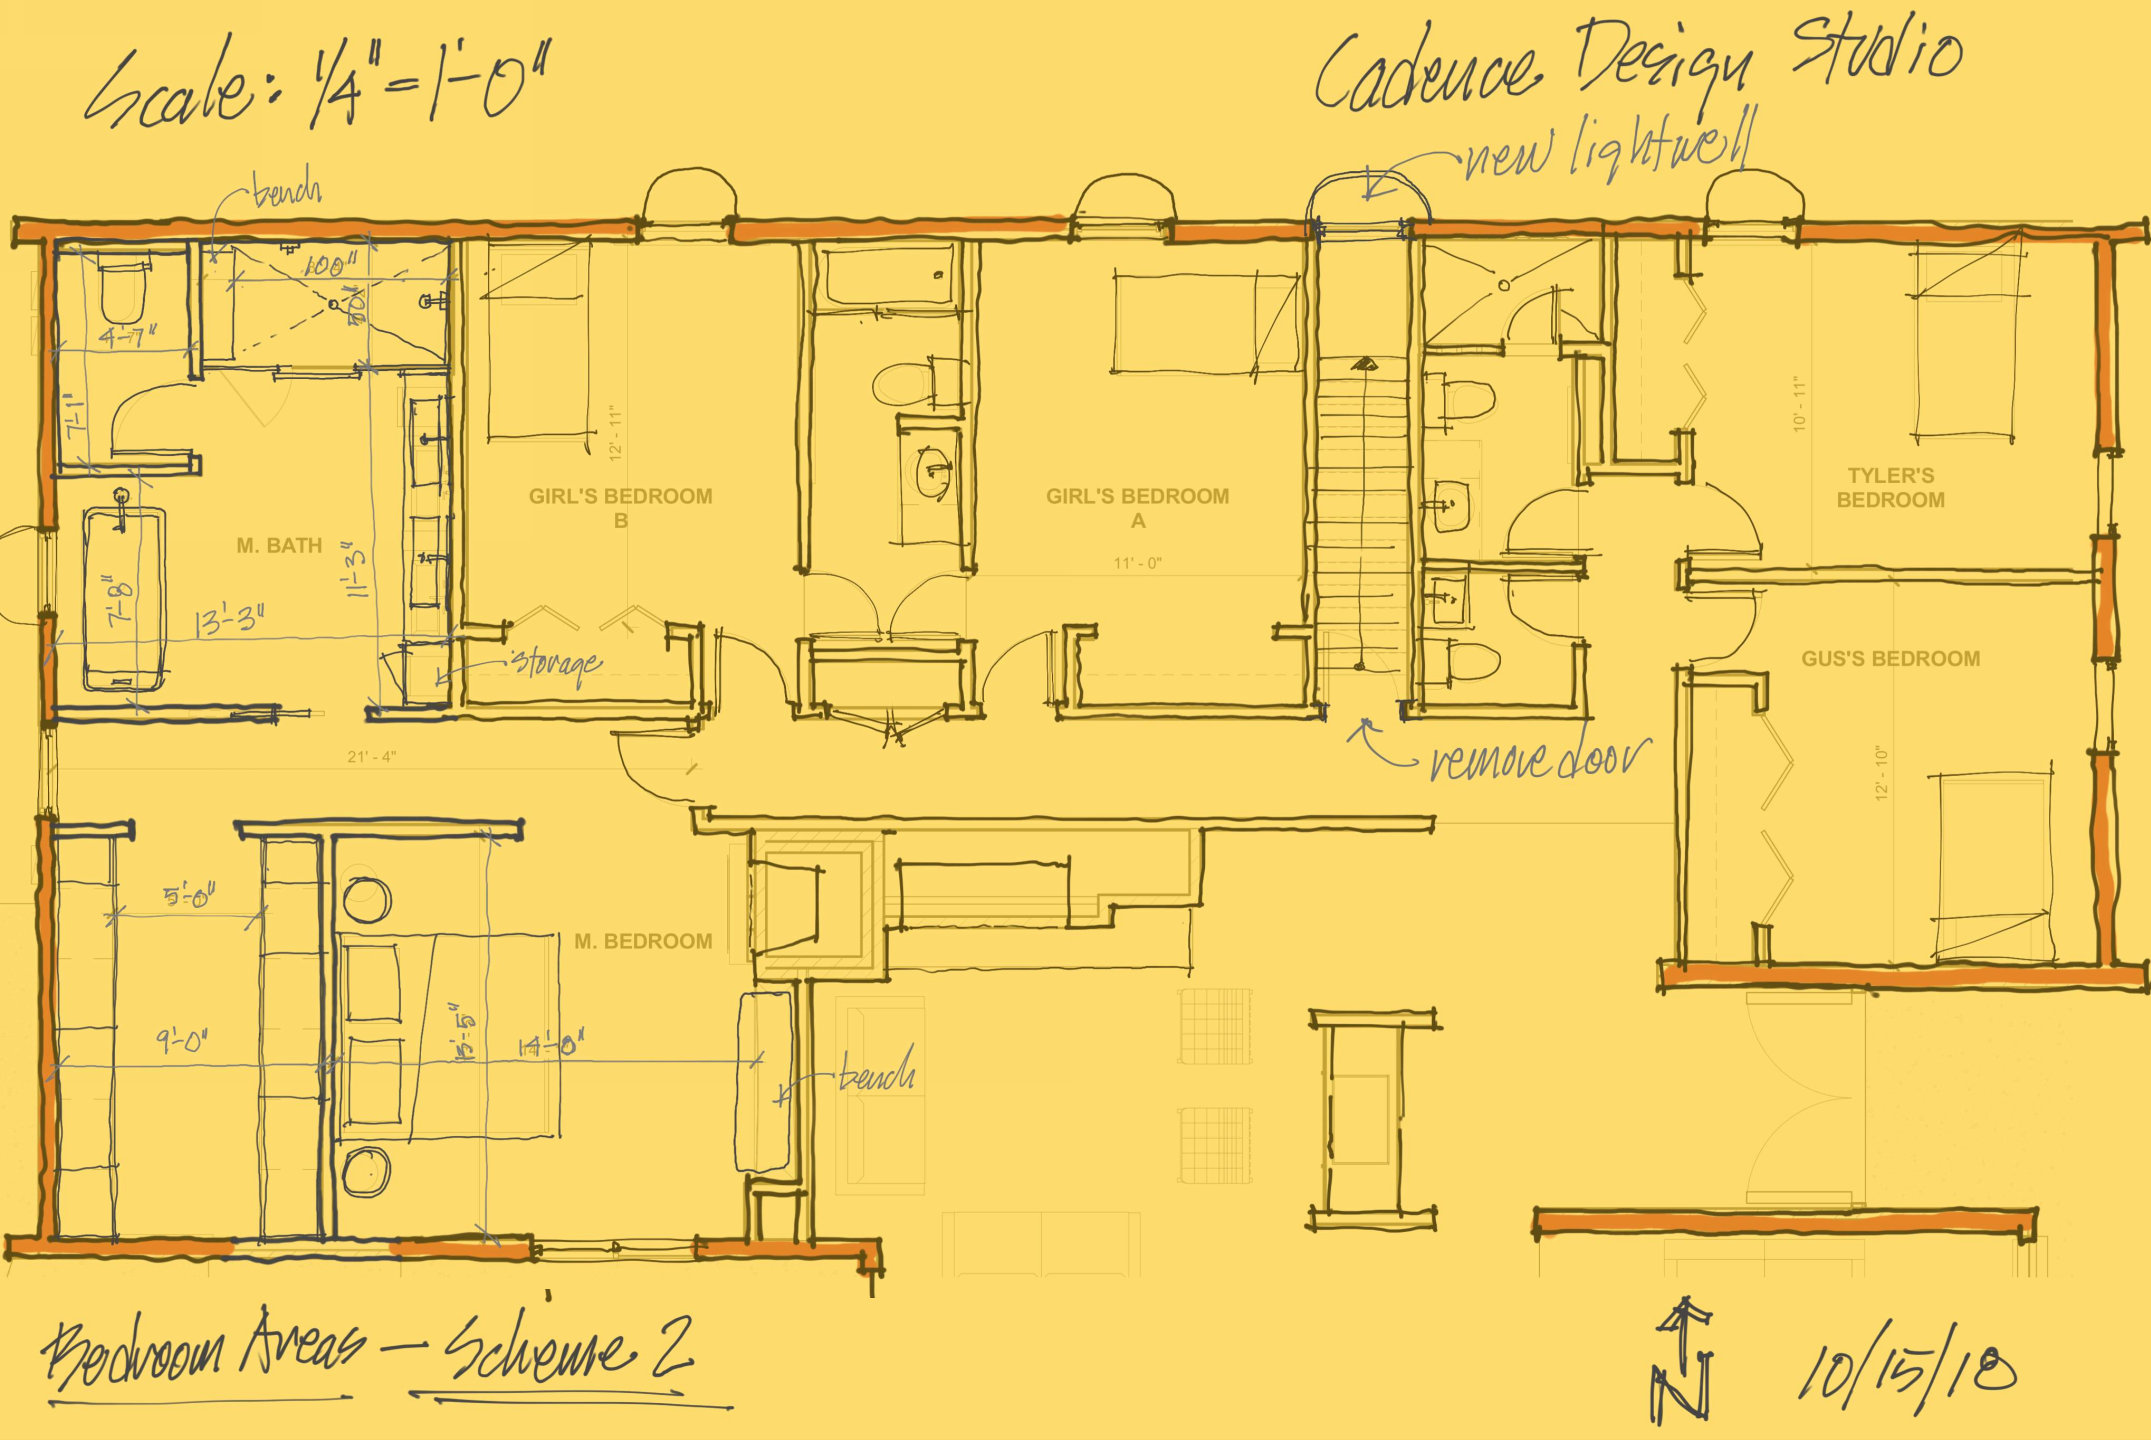 Wellshire Schematic Design Plan Sketch Bedroom Scheme 2.png